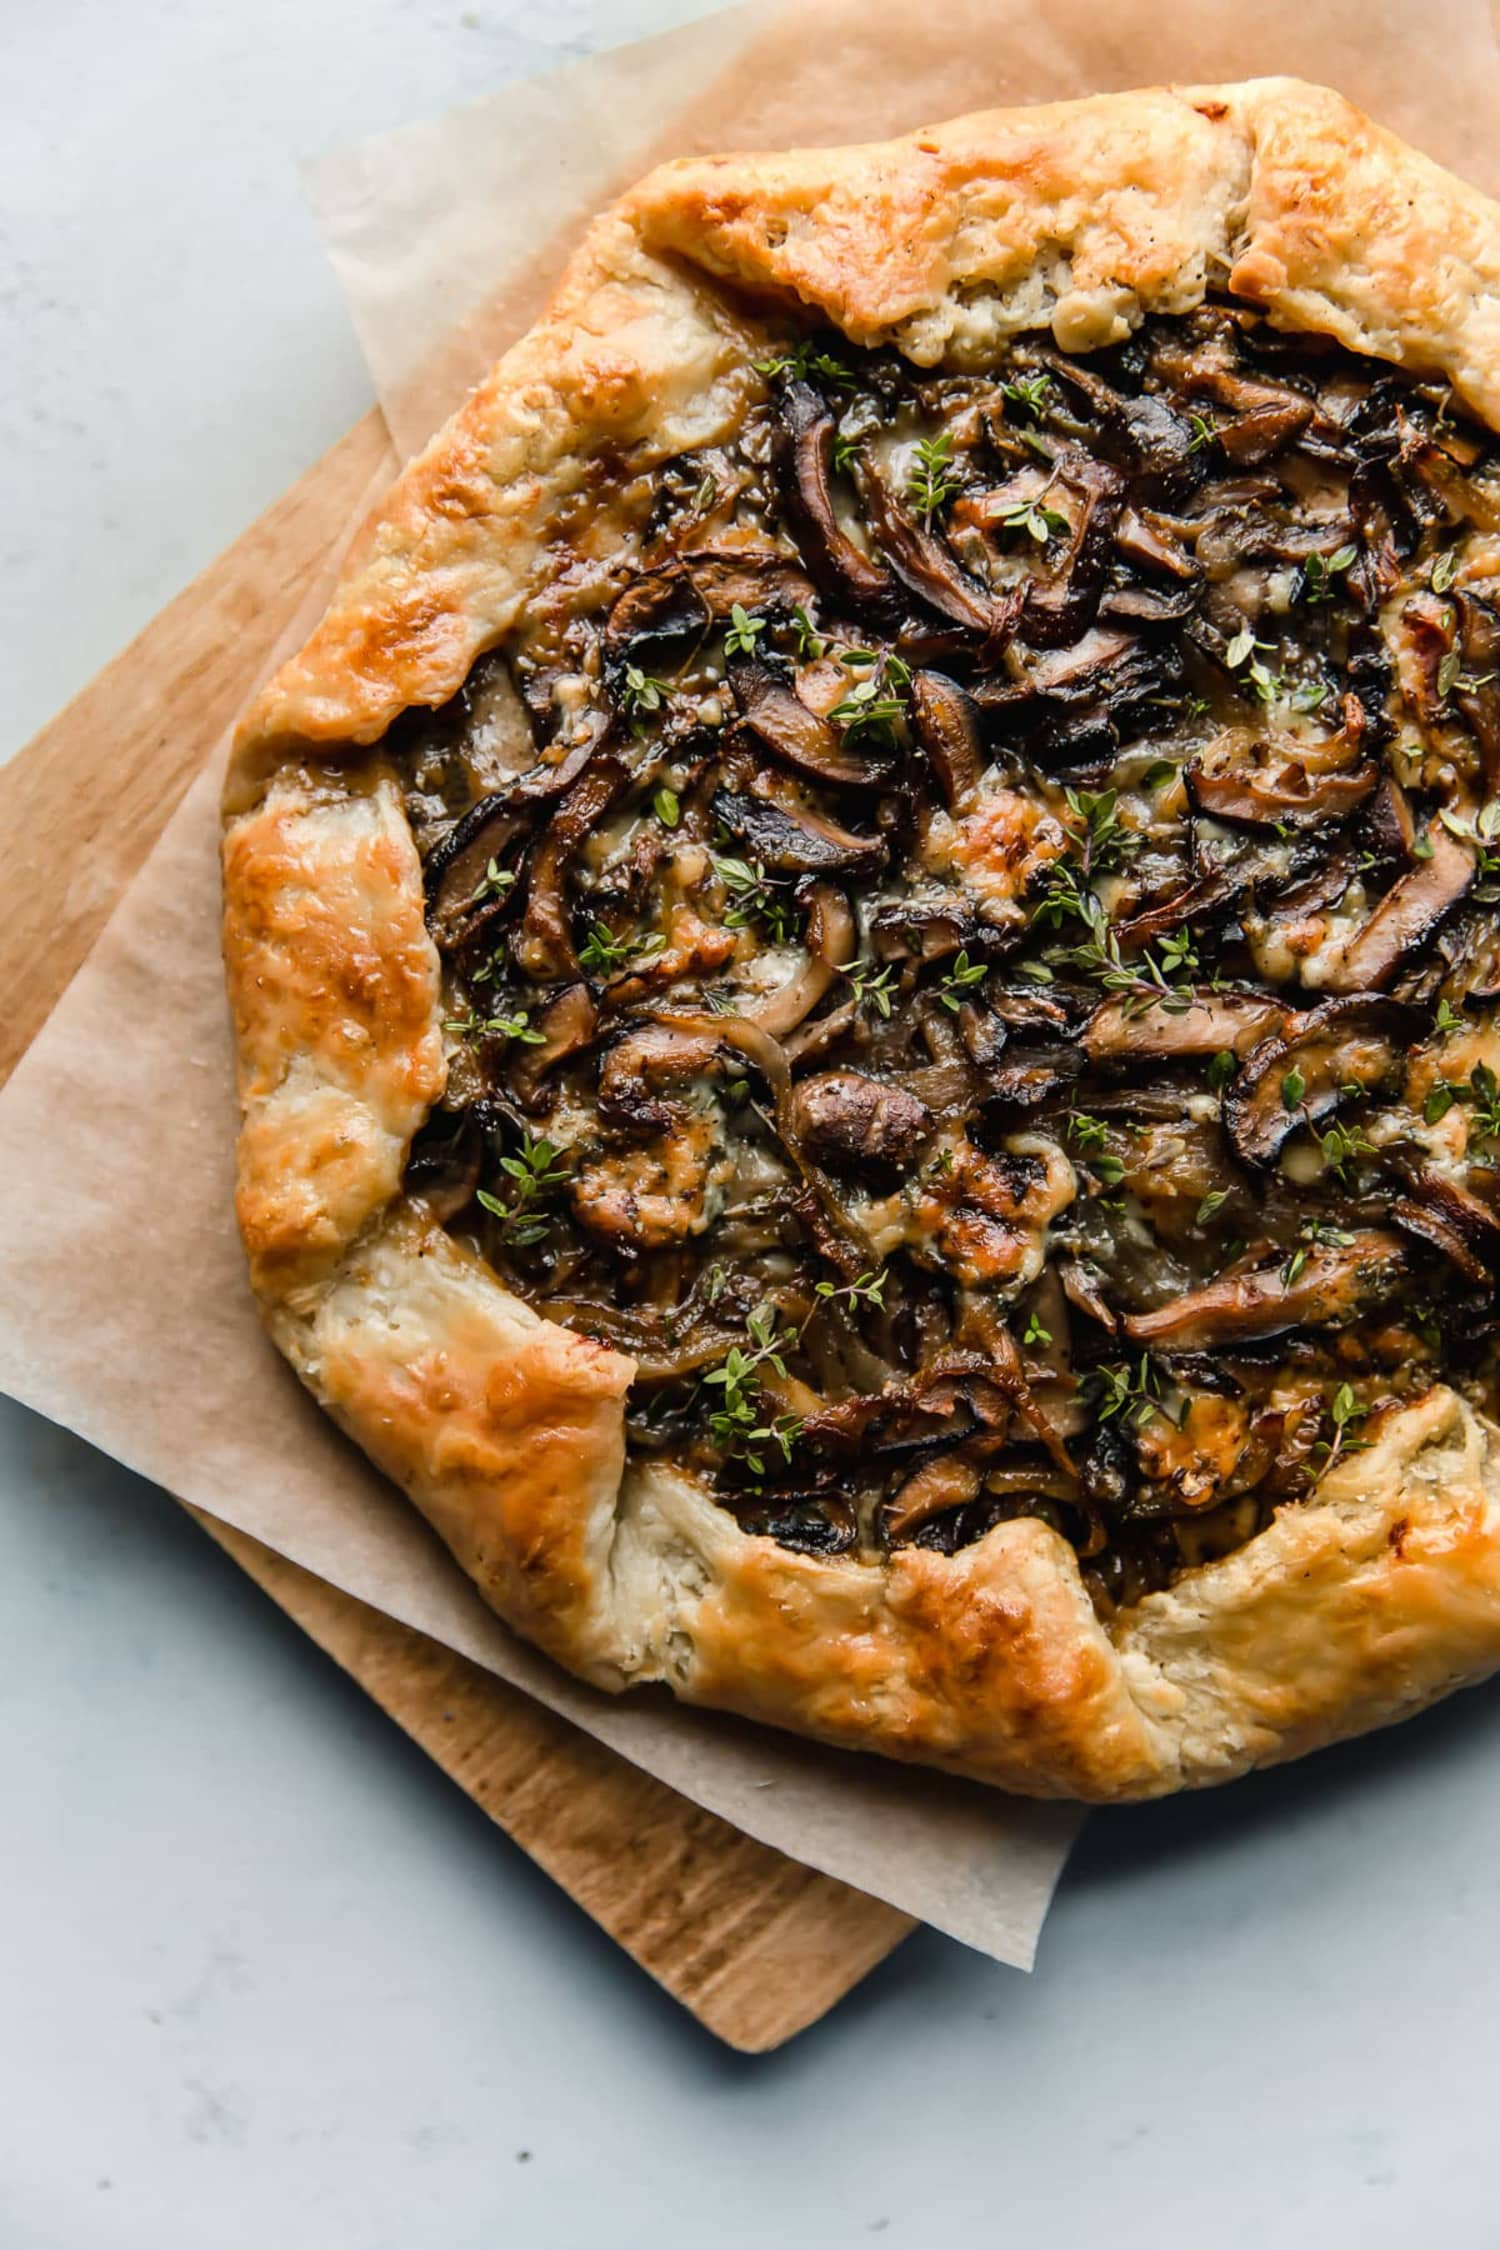 This Easy French Galette Is Packed with Mushrooms